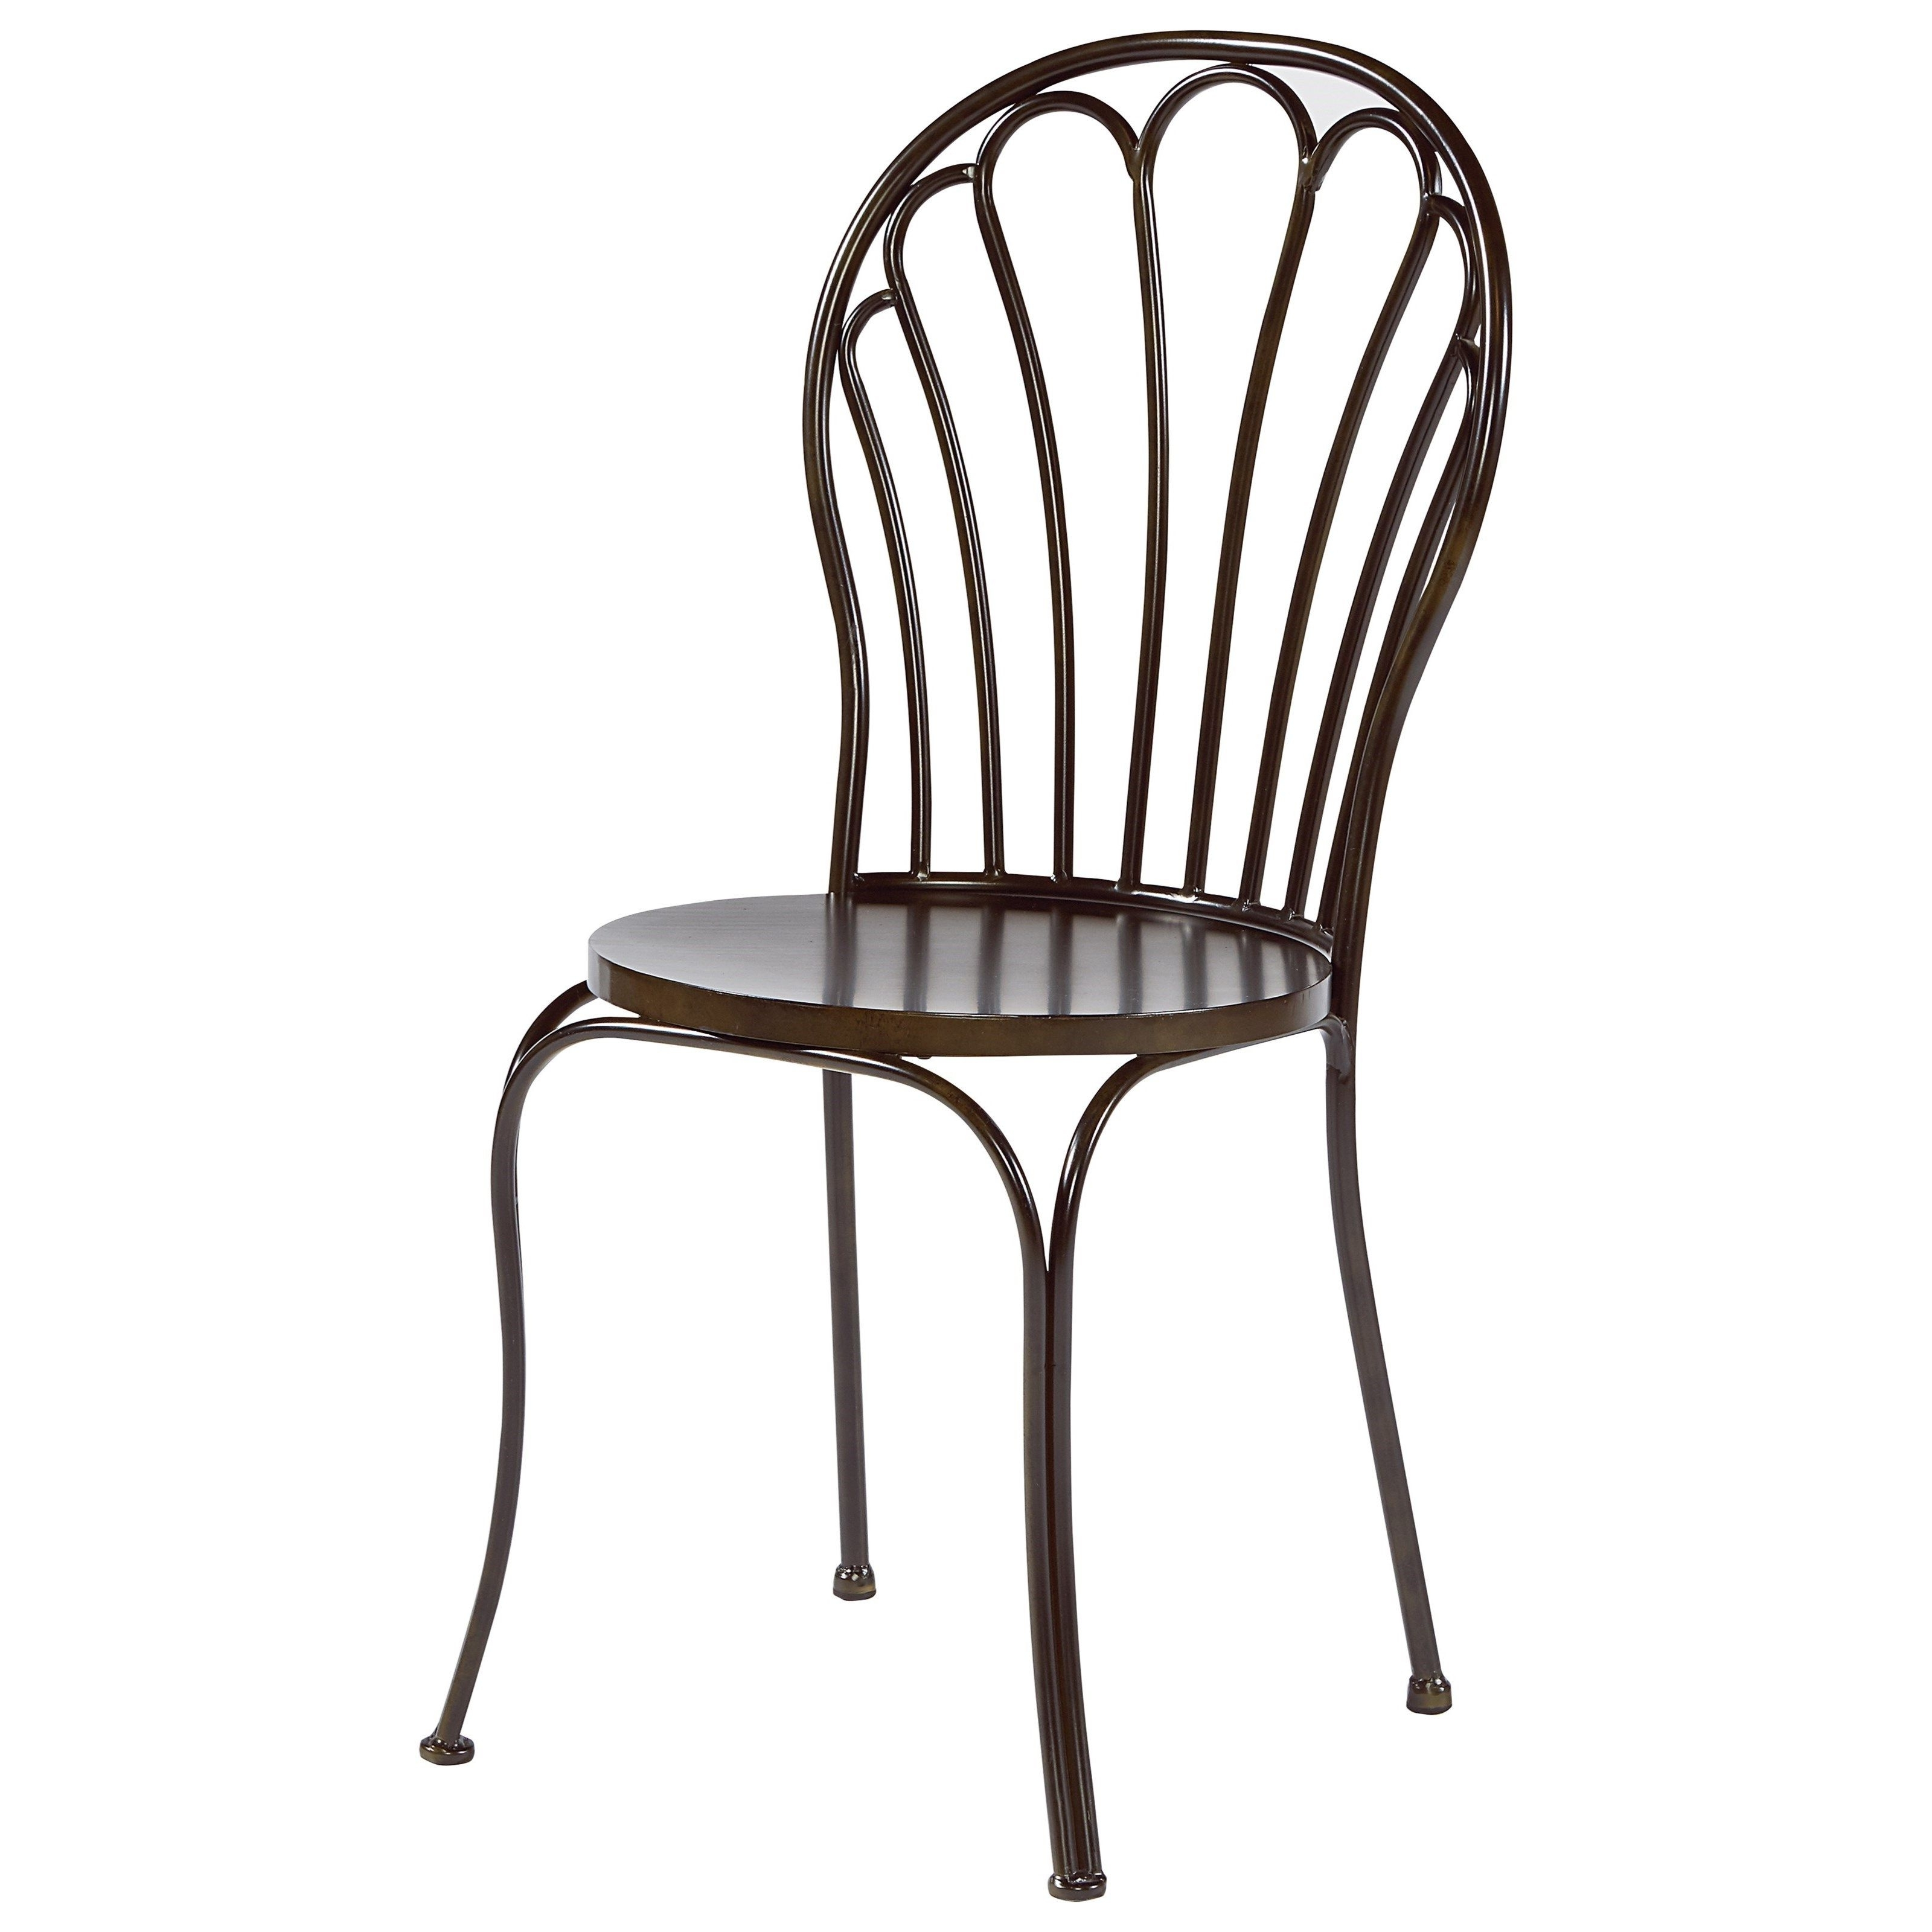 Magnolia Home Kempton Bench Side Chairs Regarding Trendy Primitive Metal Peacock Chairmagnolia Homejoanna Gaines At (View 18 of 20)